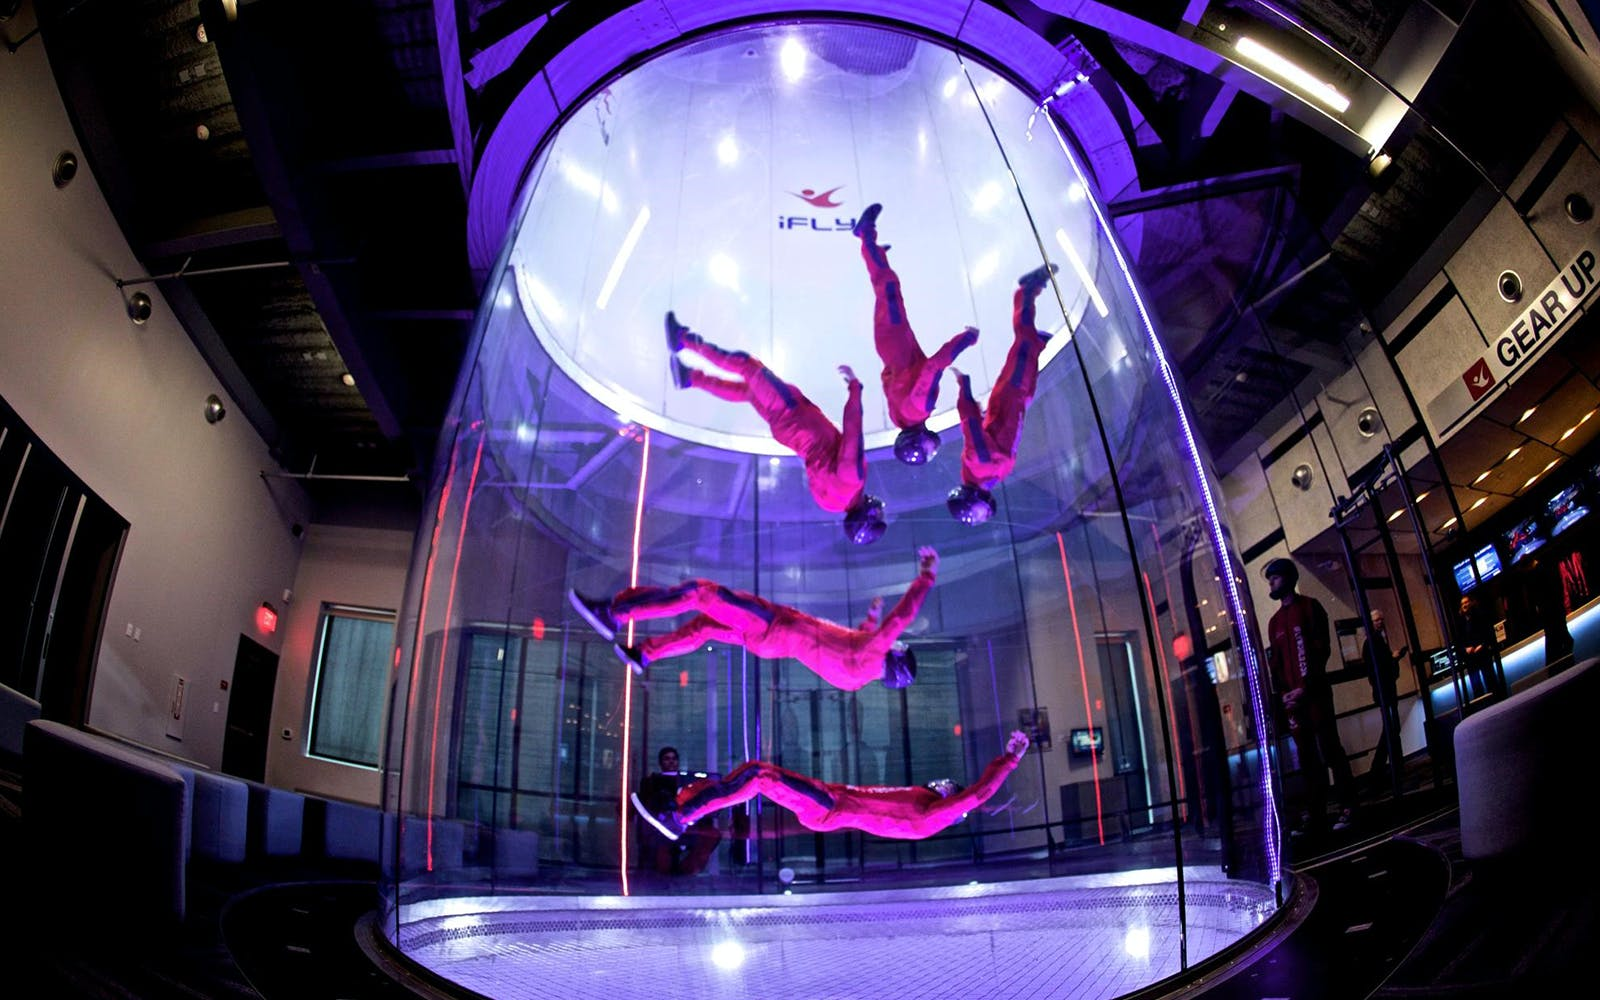 iFly Skydive